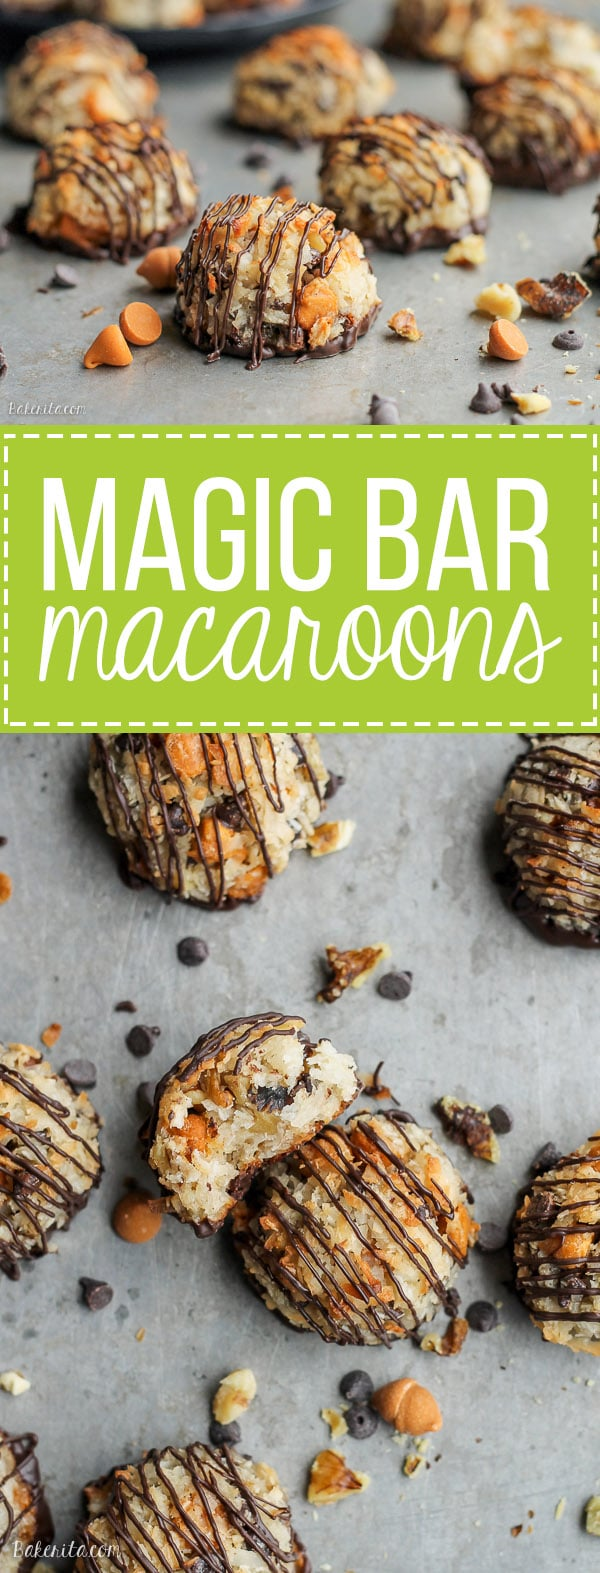 These Magic Bar Macaroons have all of the flavors of one of my favorite cookie bars, Magic Bars, in macaroon form! Chocolate chips, butterscotch, and walnuts make these naturally gluten-free cookies even more delicious.